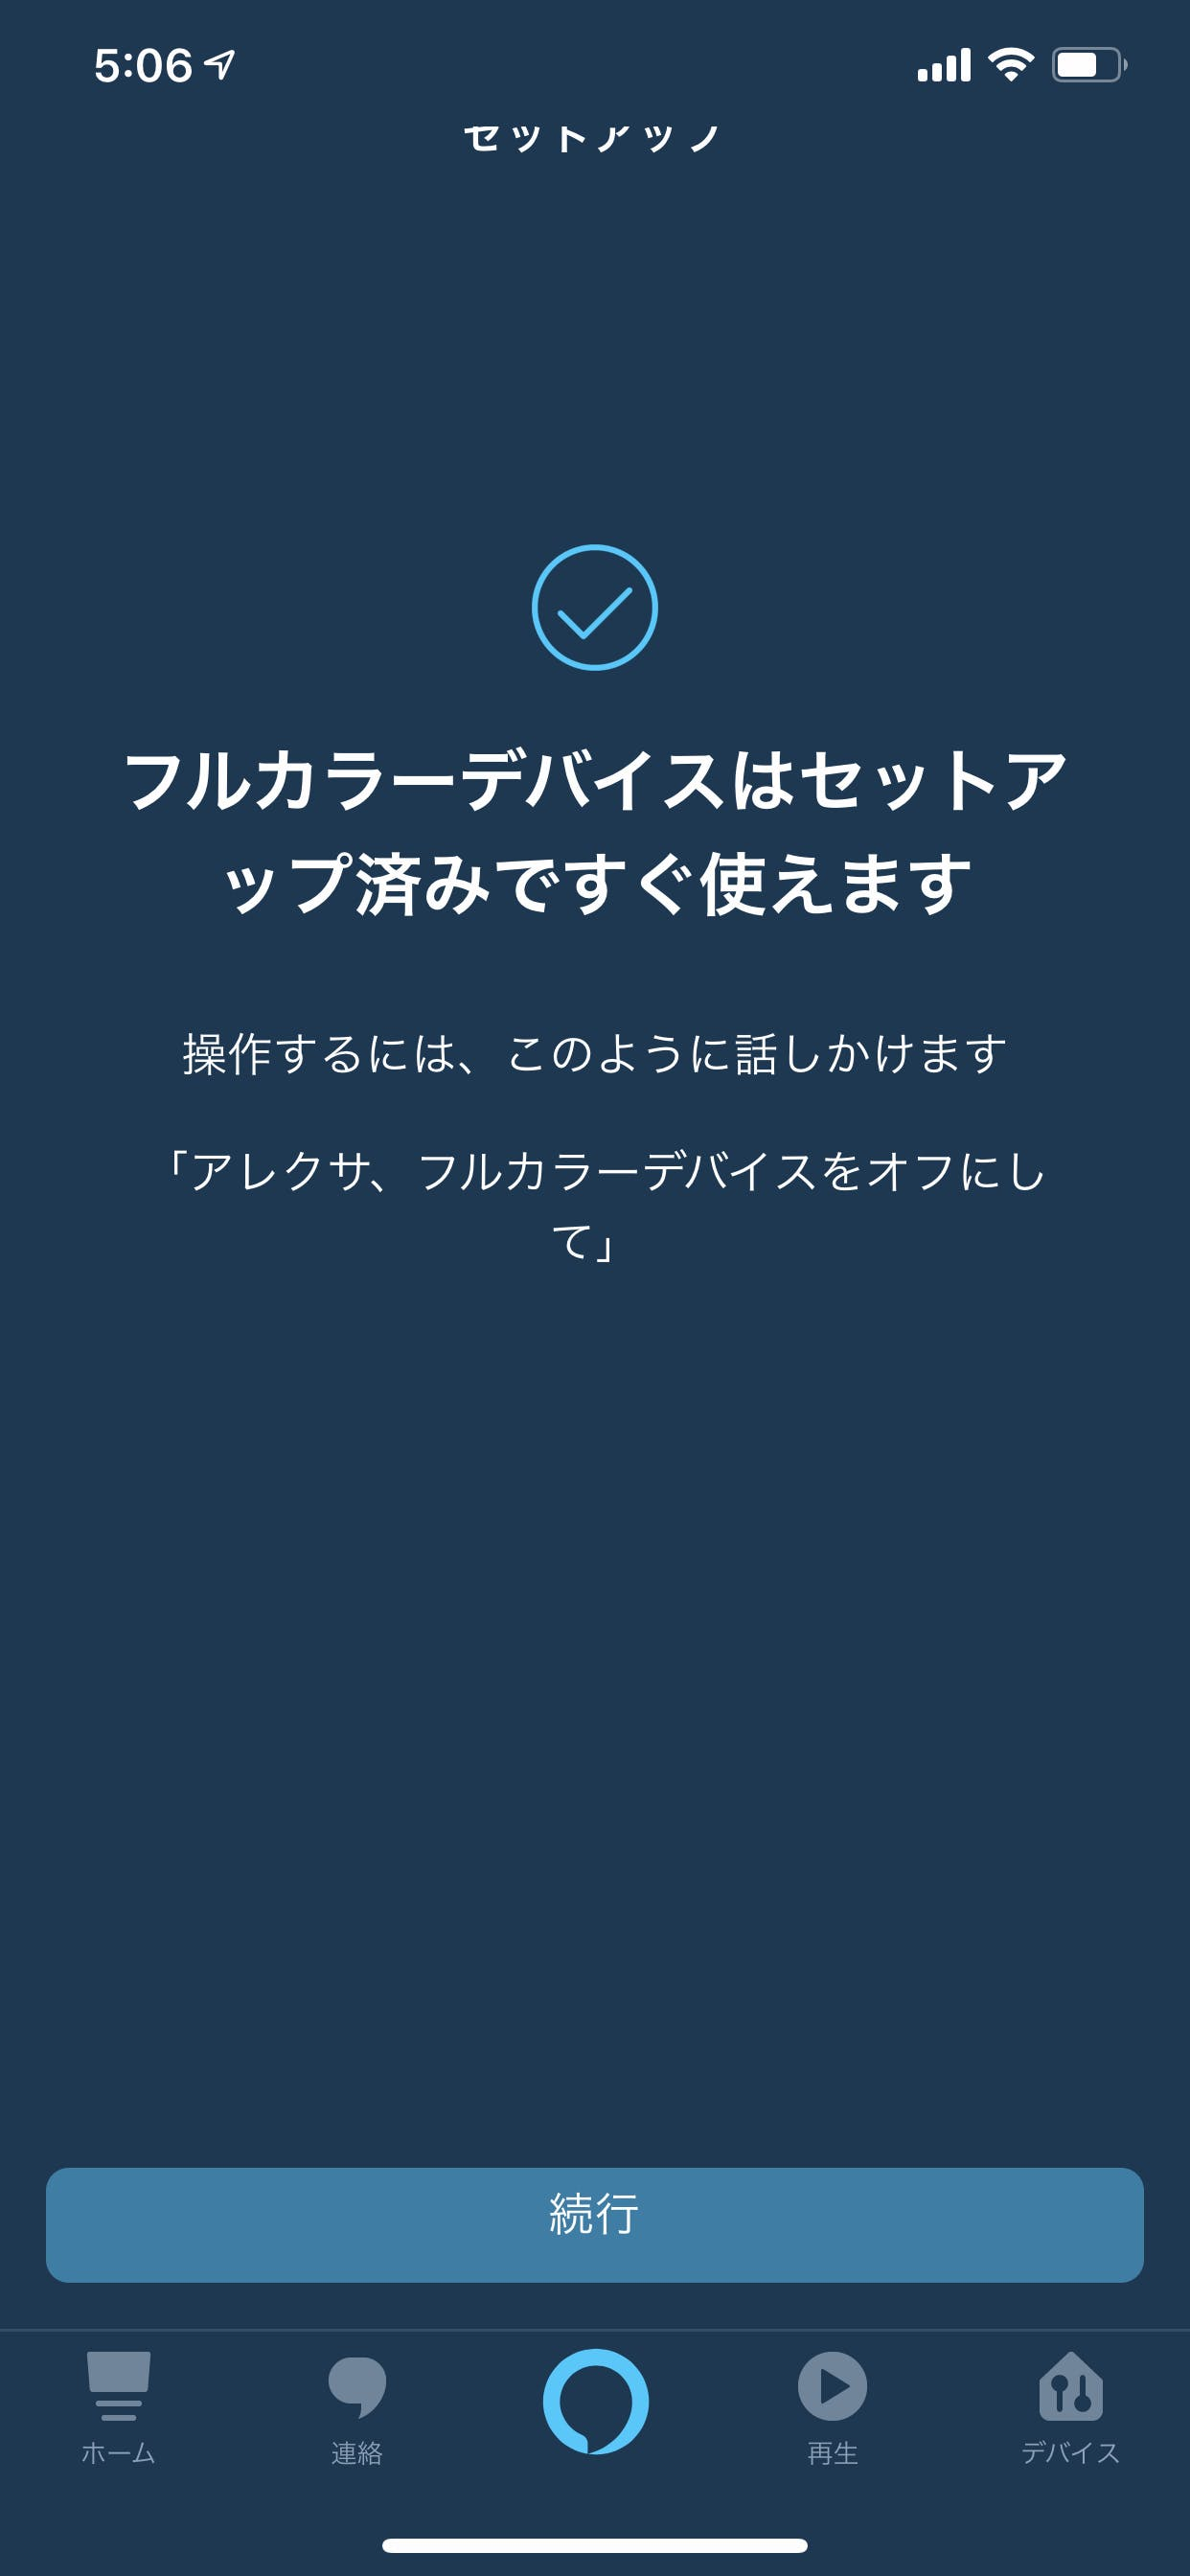 IMG_2777.PNG